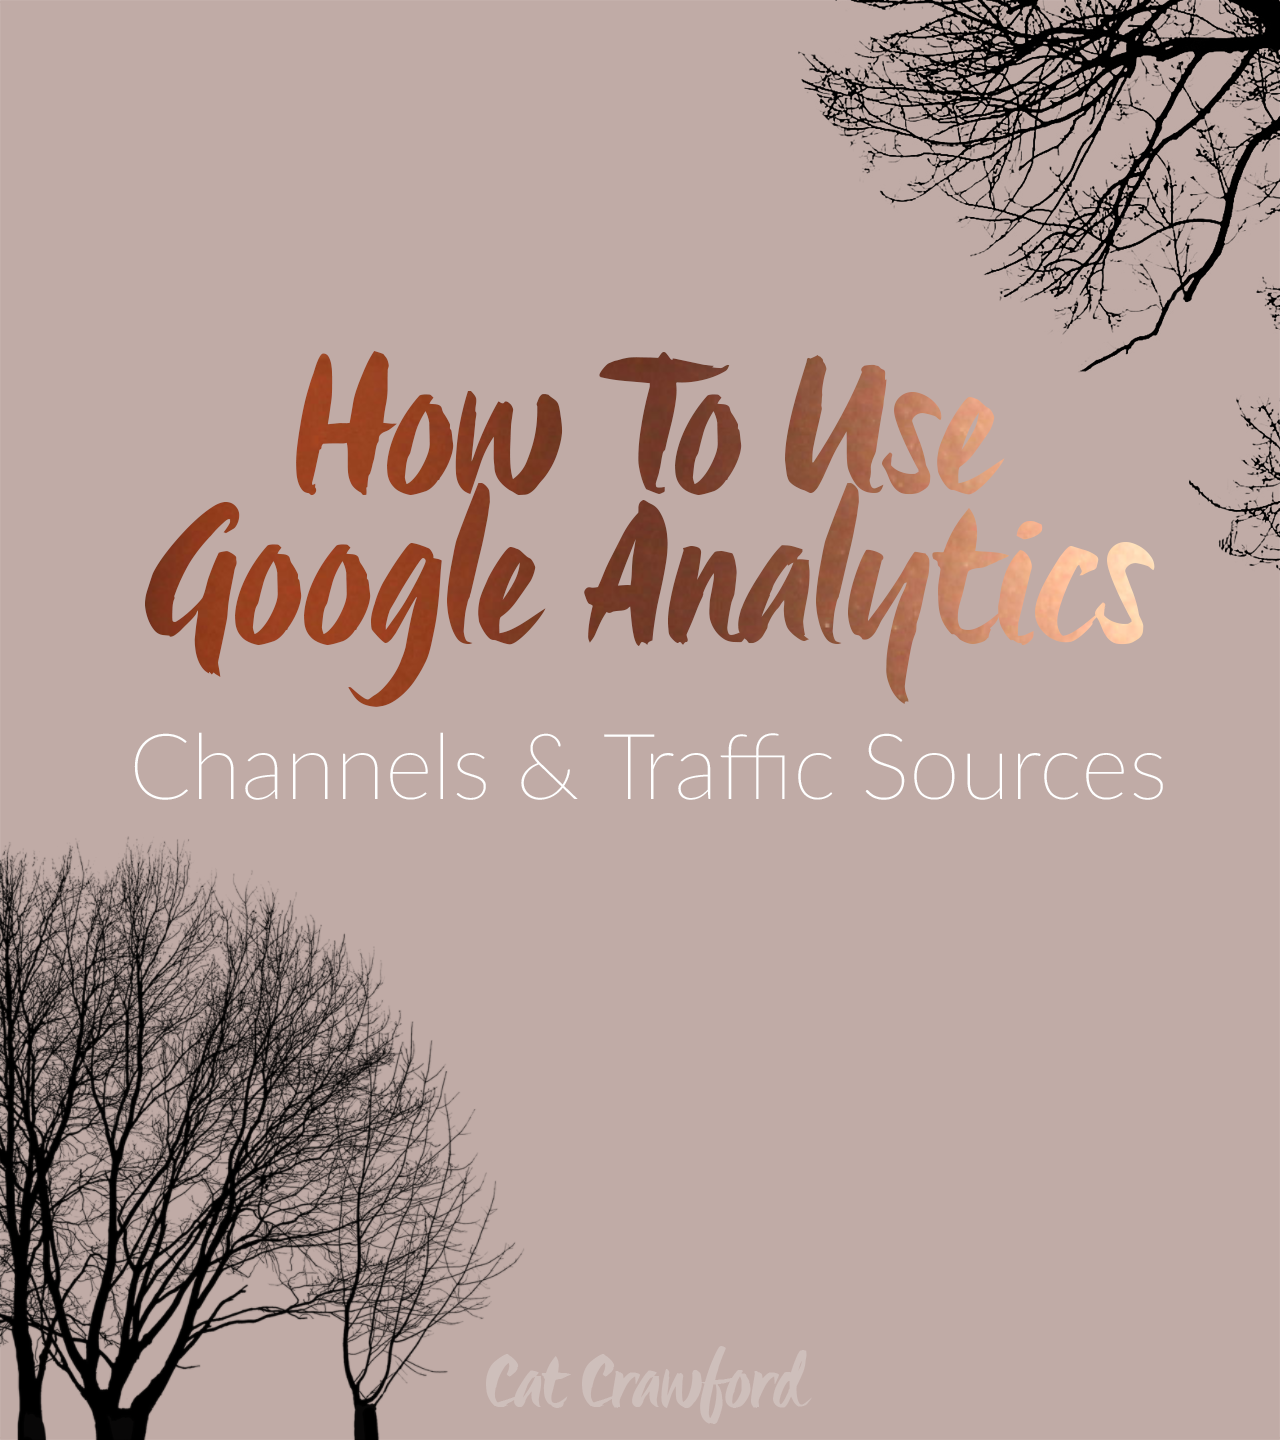 How To Use Google Analytics: Channels And Traffic Sources